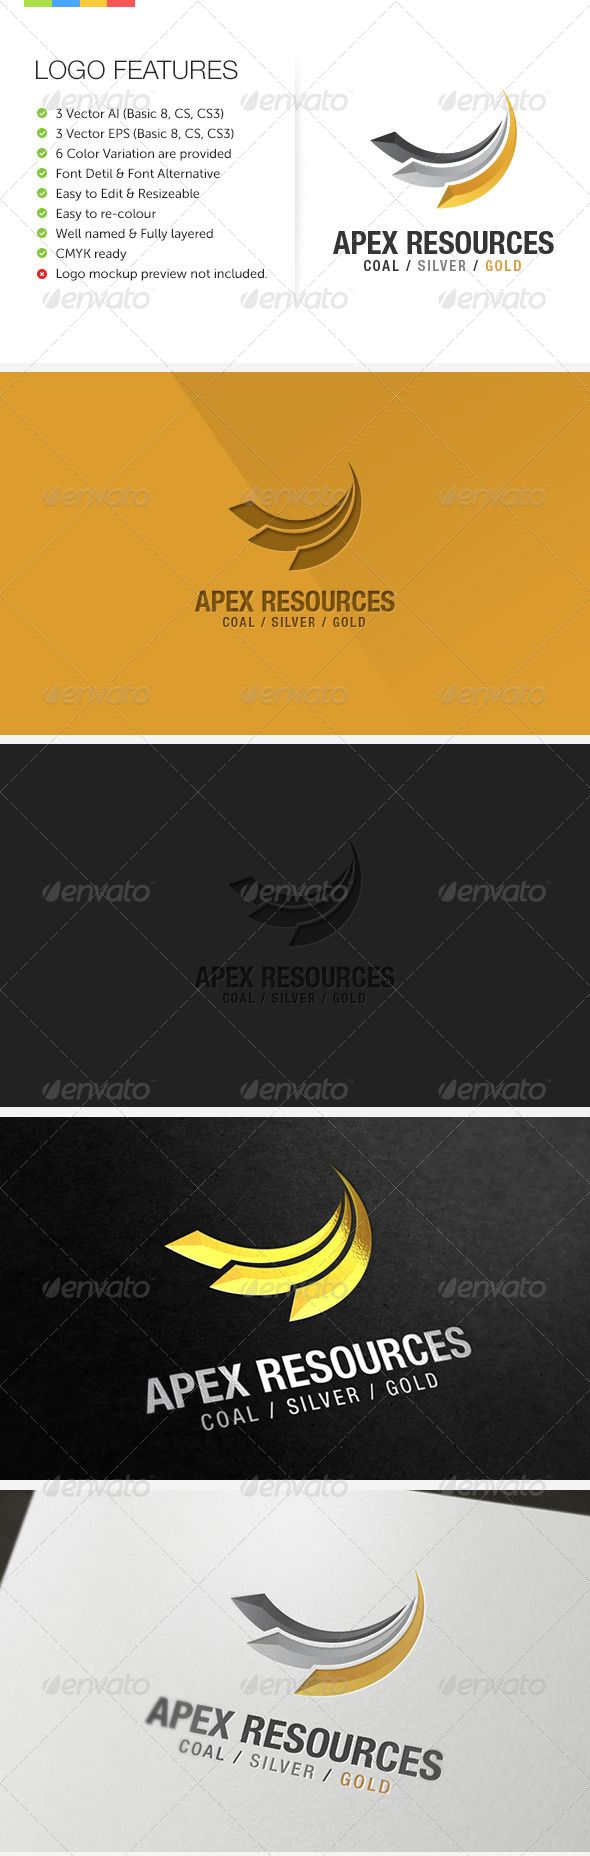 Apex Mining Exploration  #GraphicRiver         An excellent logo for Mining, Exploration, Resources or maybe Business consulting company, using abstract shape of 3 swoosh that can be represent in many ways.